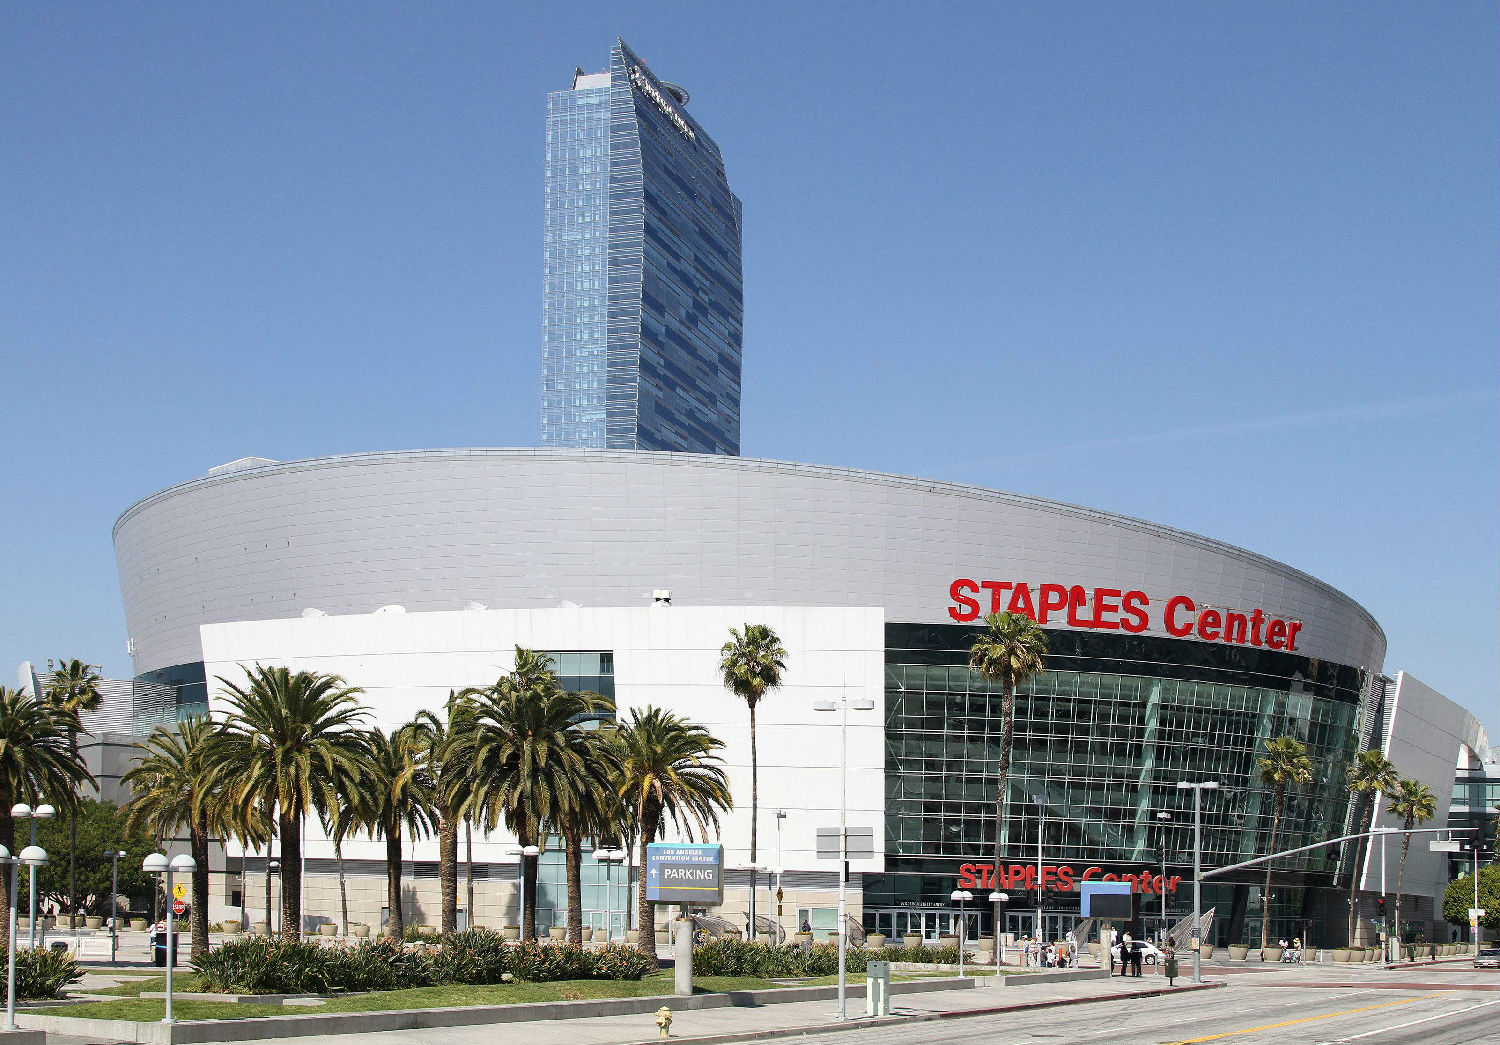 斯台普斯中心(Staples Center).jpg